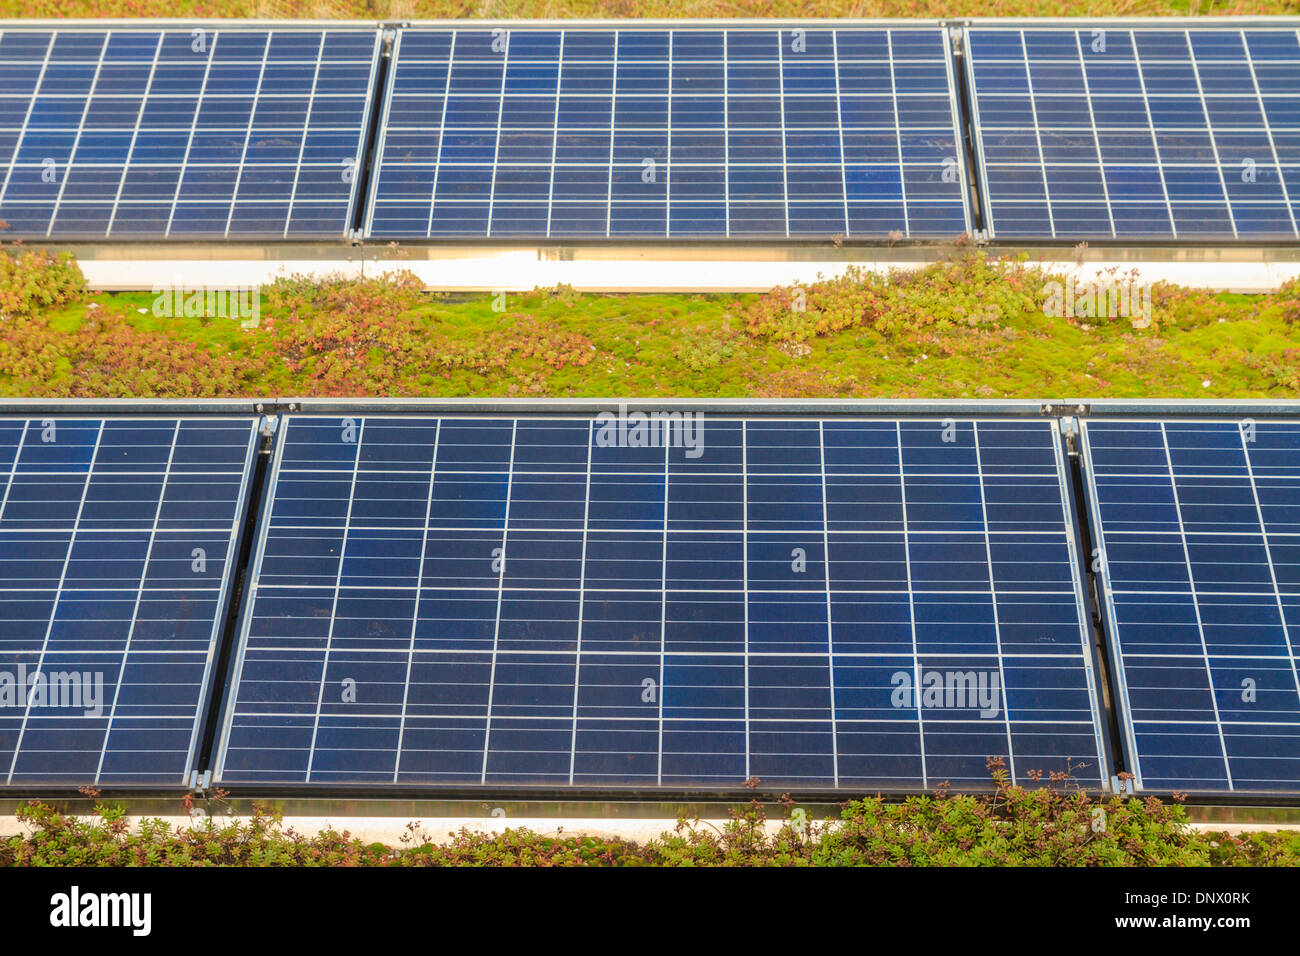 Solar panels on roof (with green garden) - Stock Image